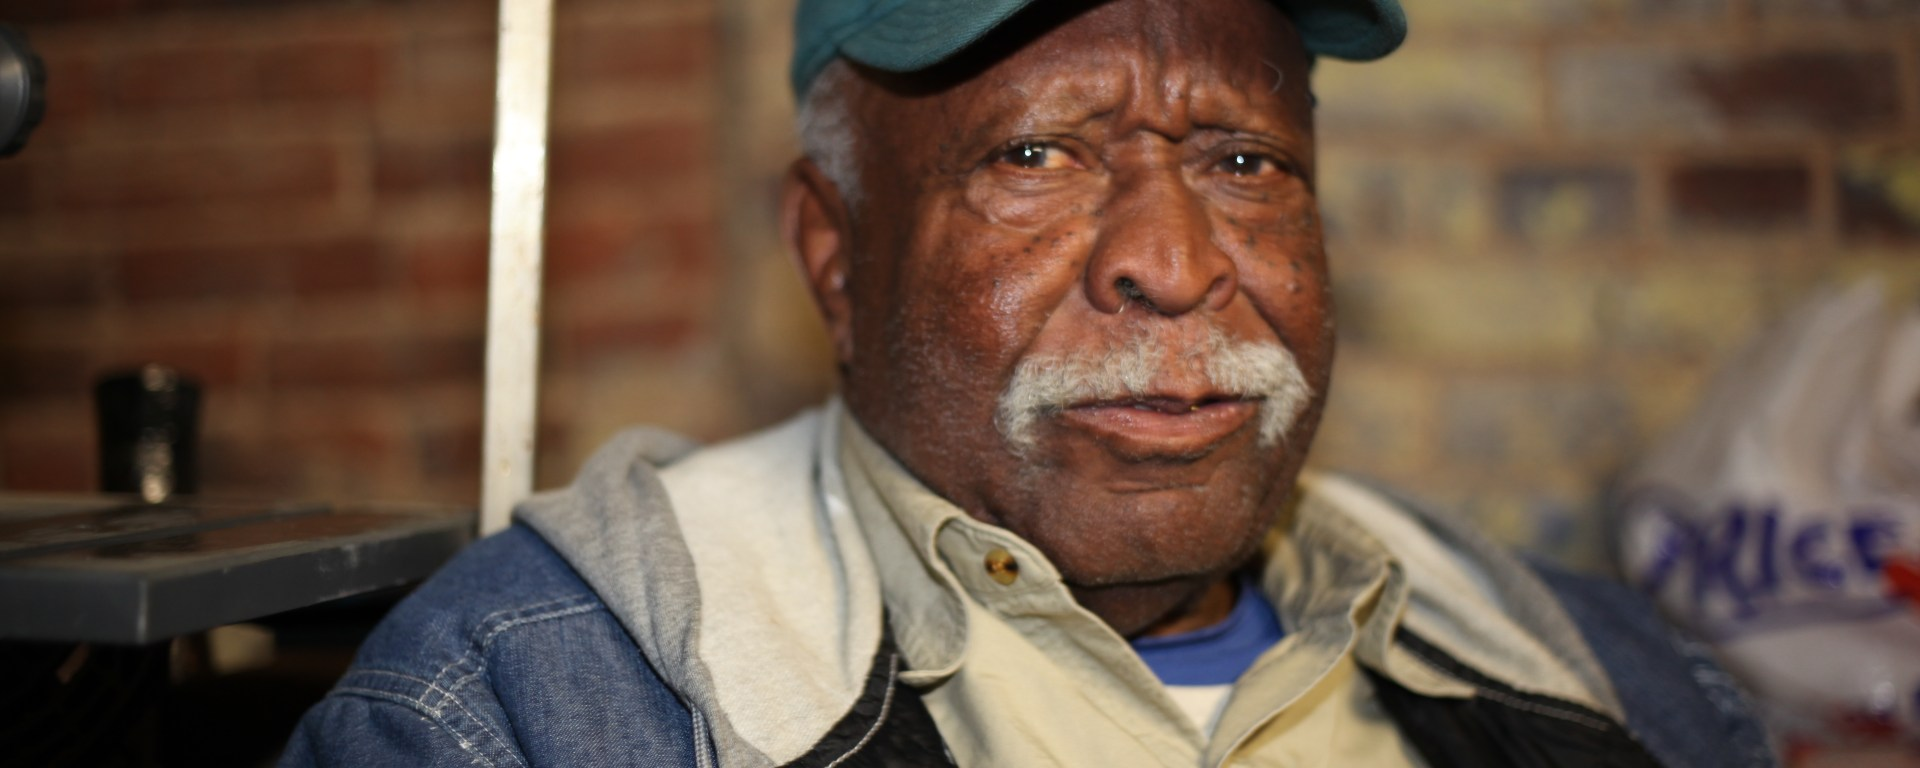 Black man wearing a jean jacket and baseball cap.